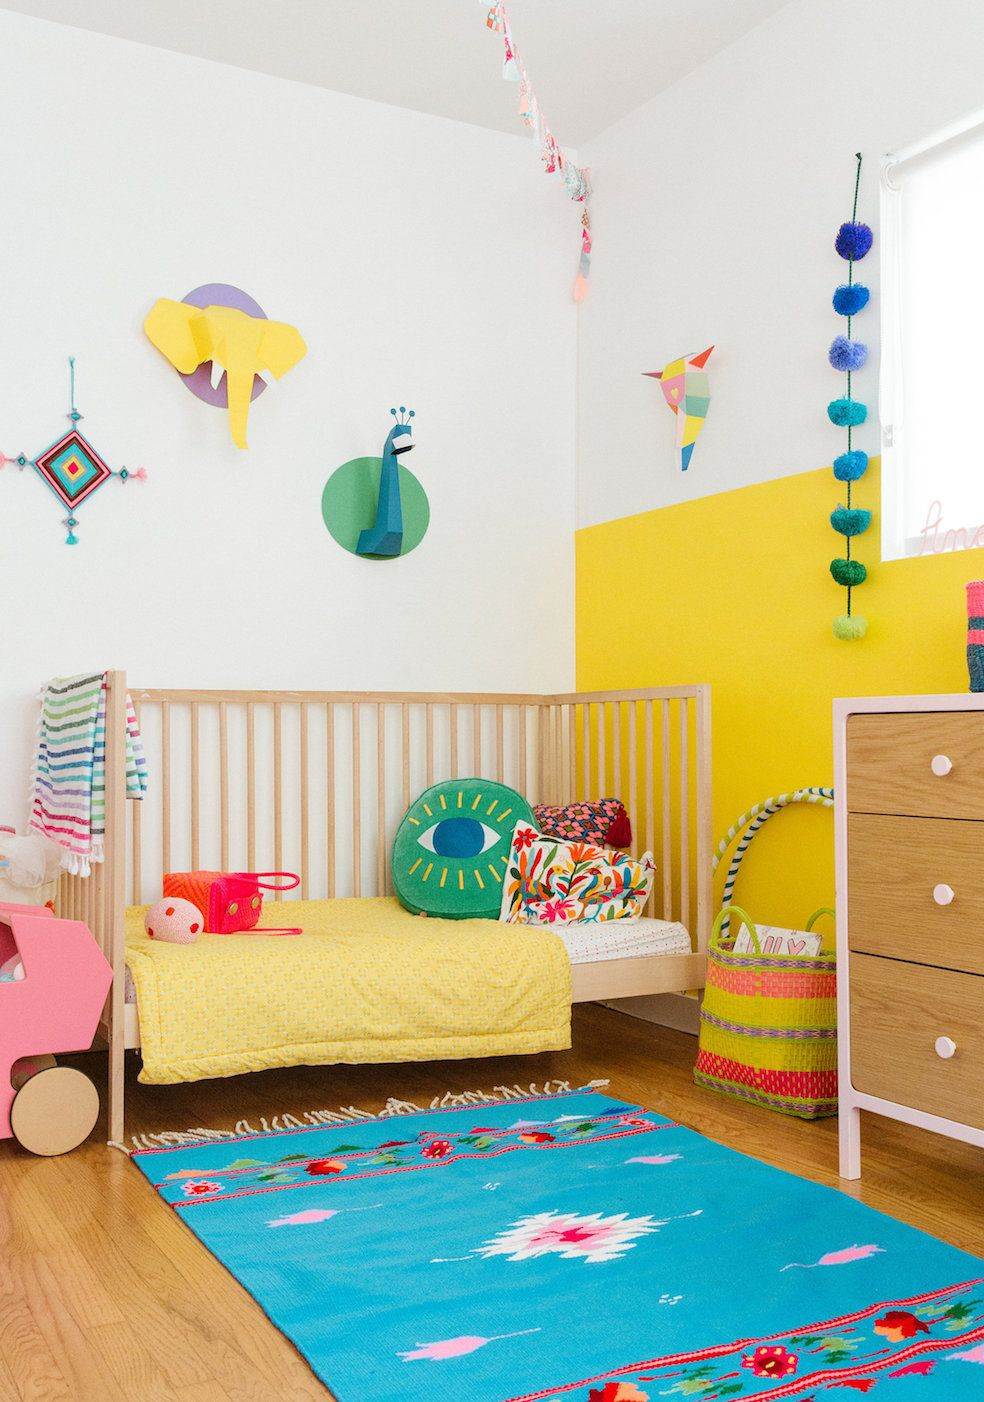 A Colorful Home in Venice Beach | Venice beach, Nursery and Kids rooms